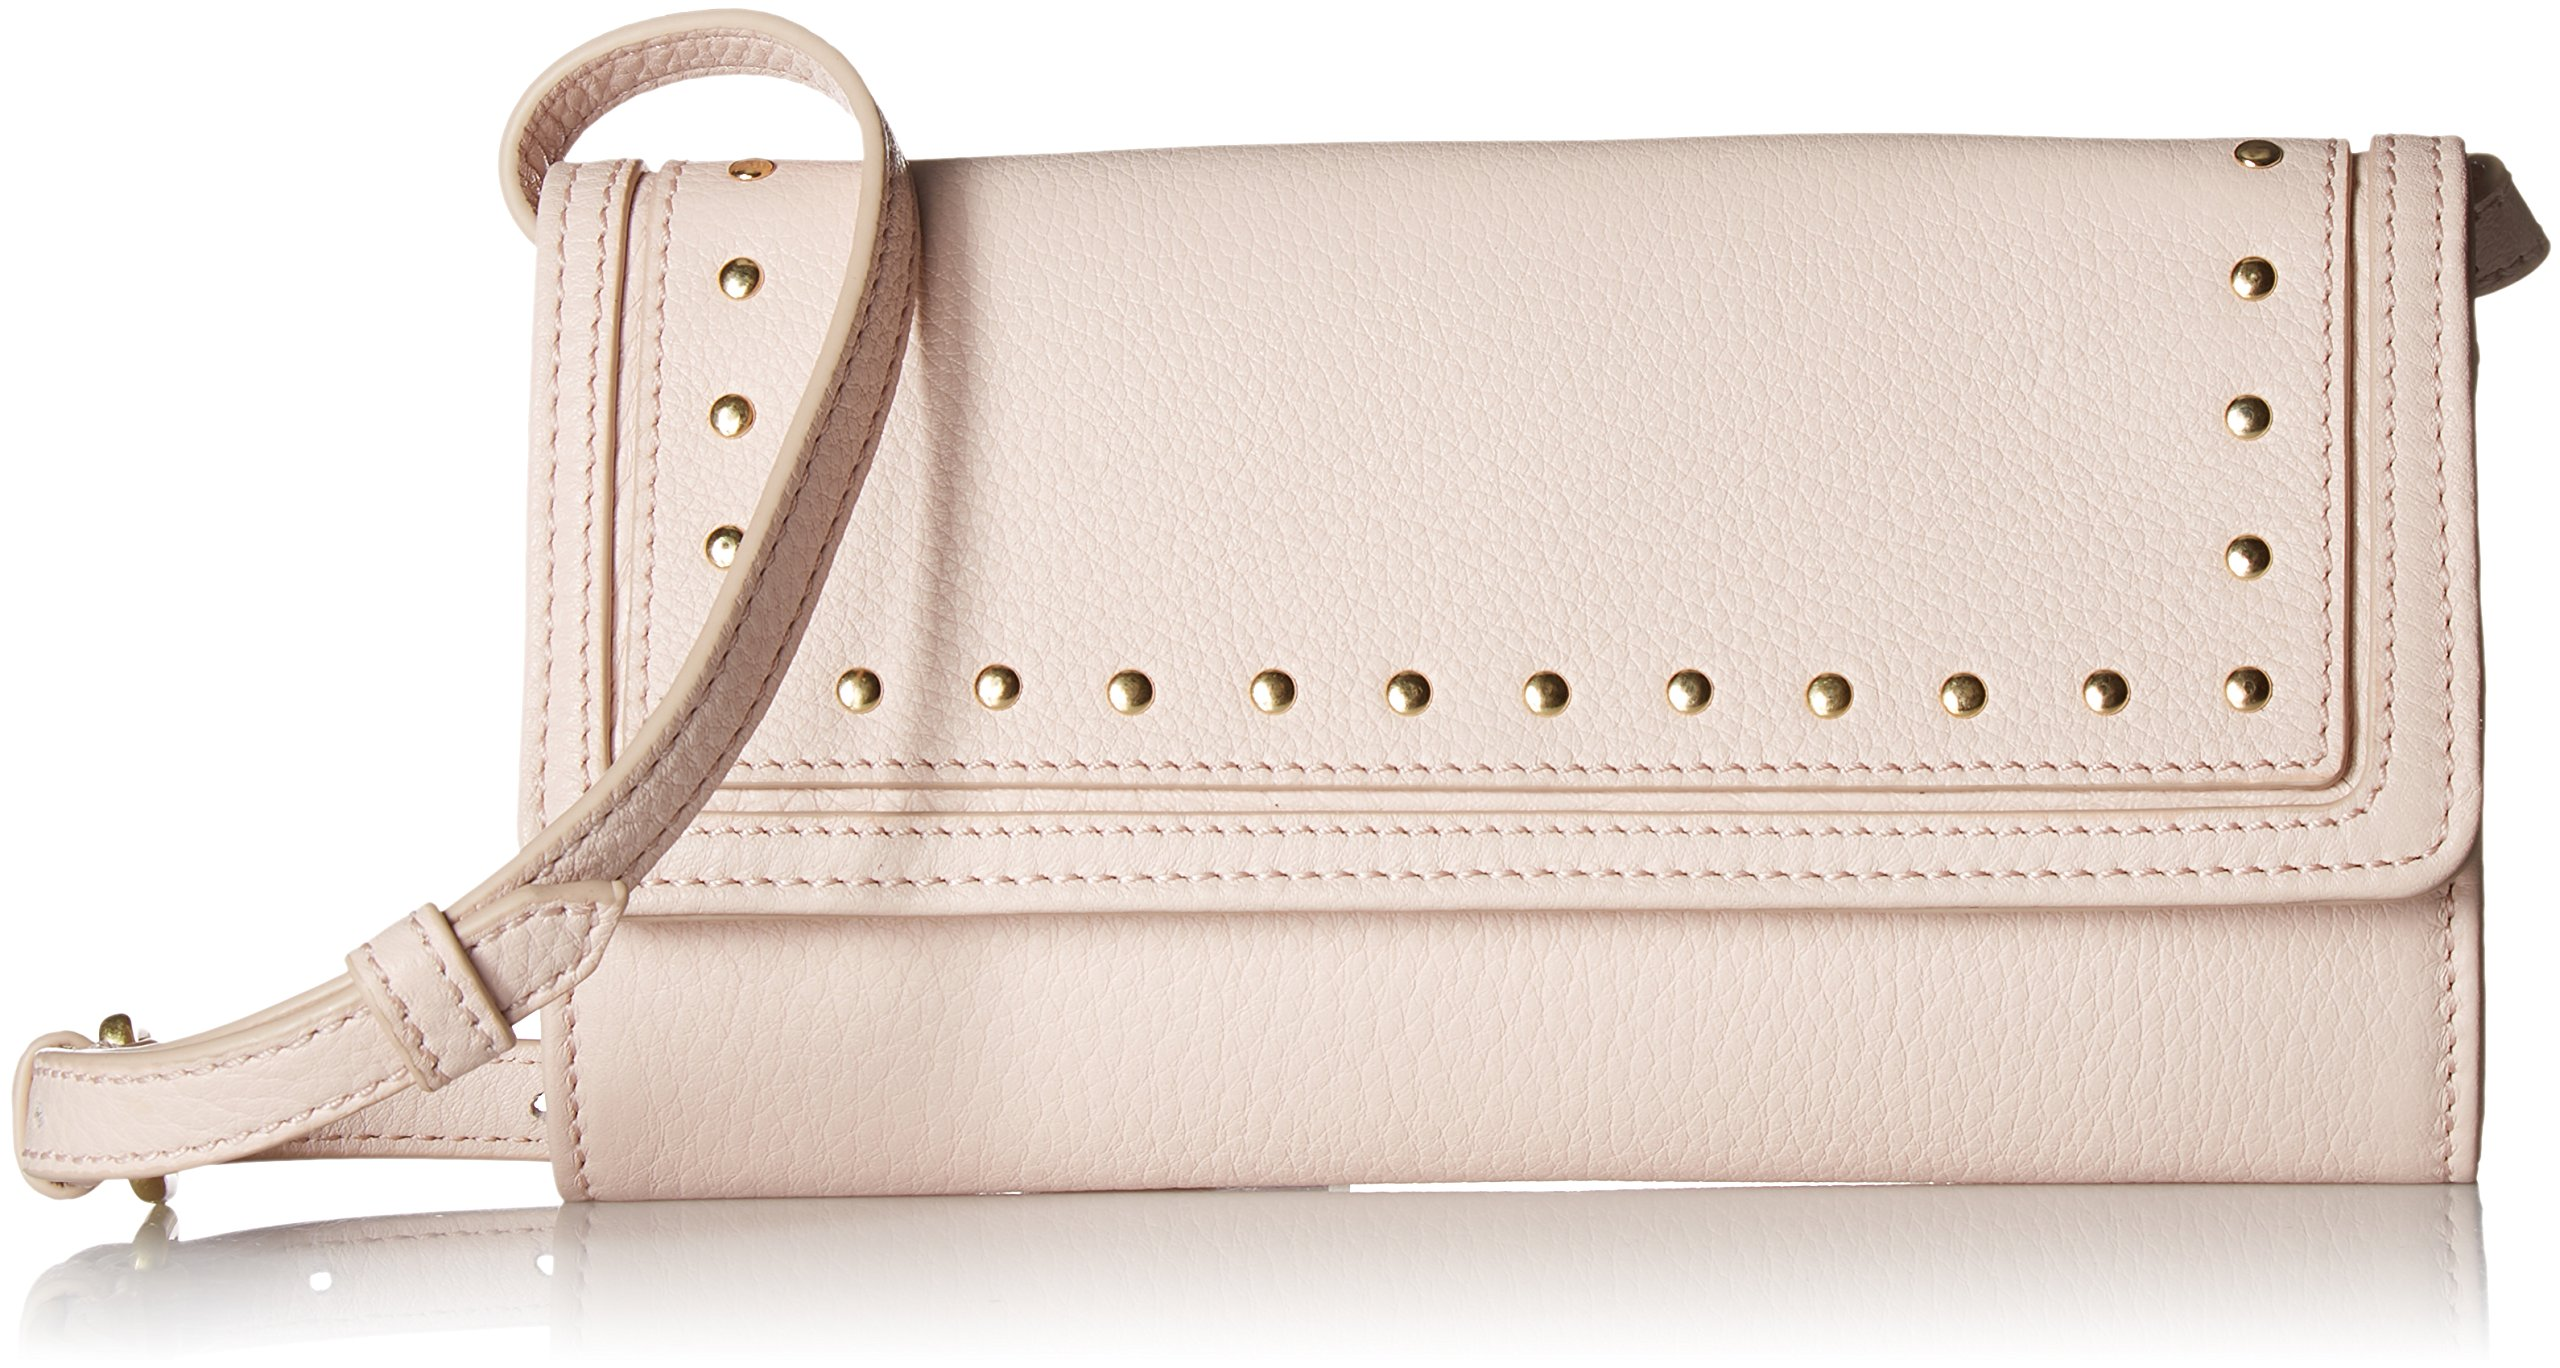 Cole Haan Cassidy Smartphone Wallet Crossbody Clutch Bag, Peach Blush